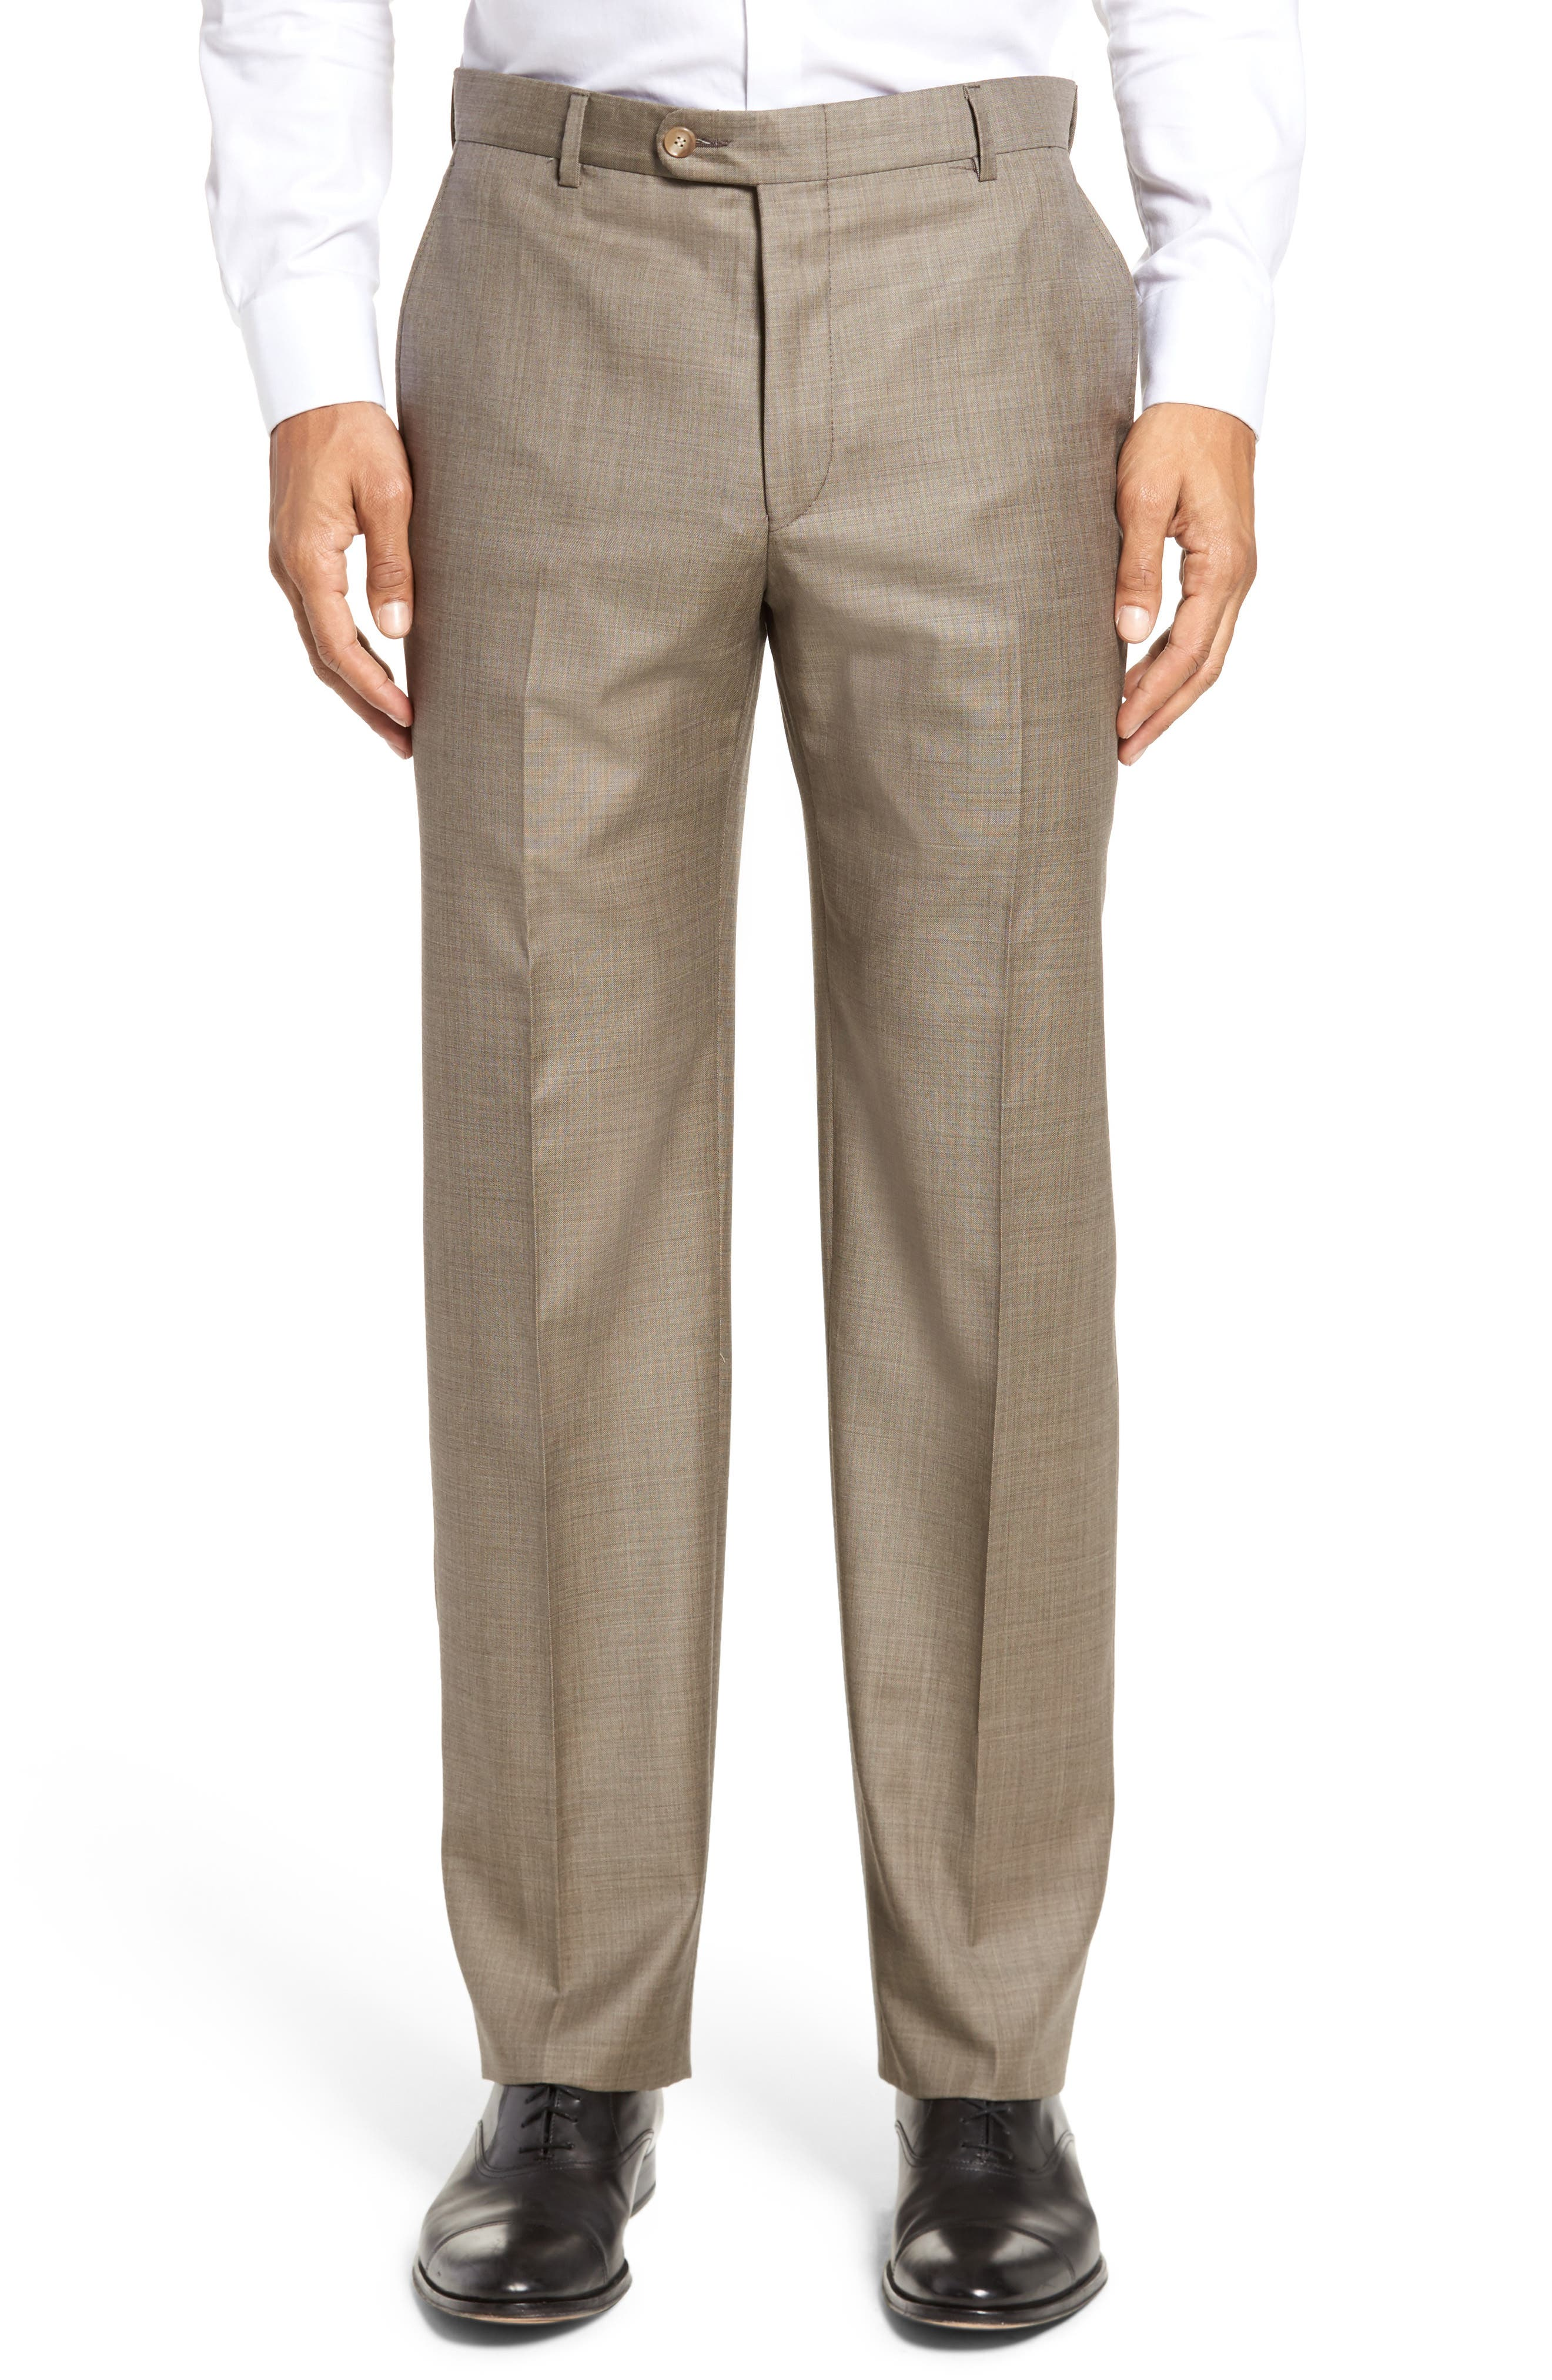 Classic B Fit Flat Front Solid Wool Trousers,                             Main thumbnail 1, color,                             Tan Sharkskin